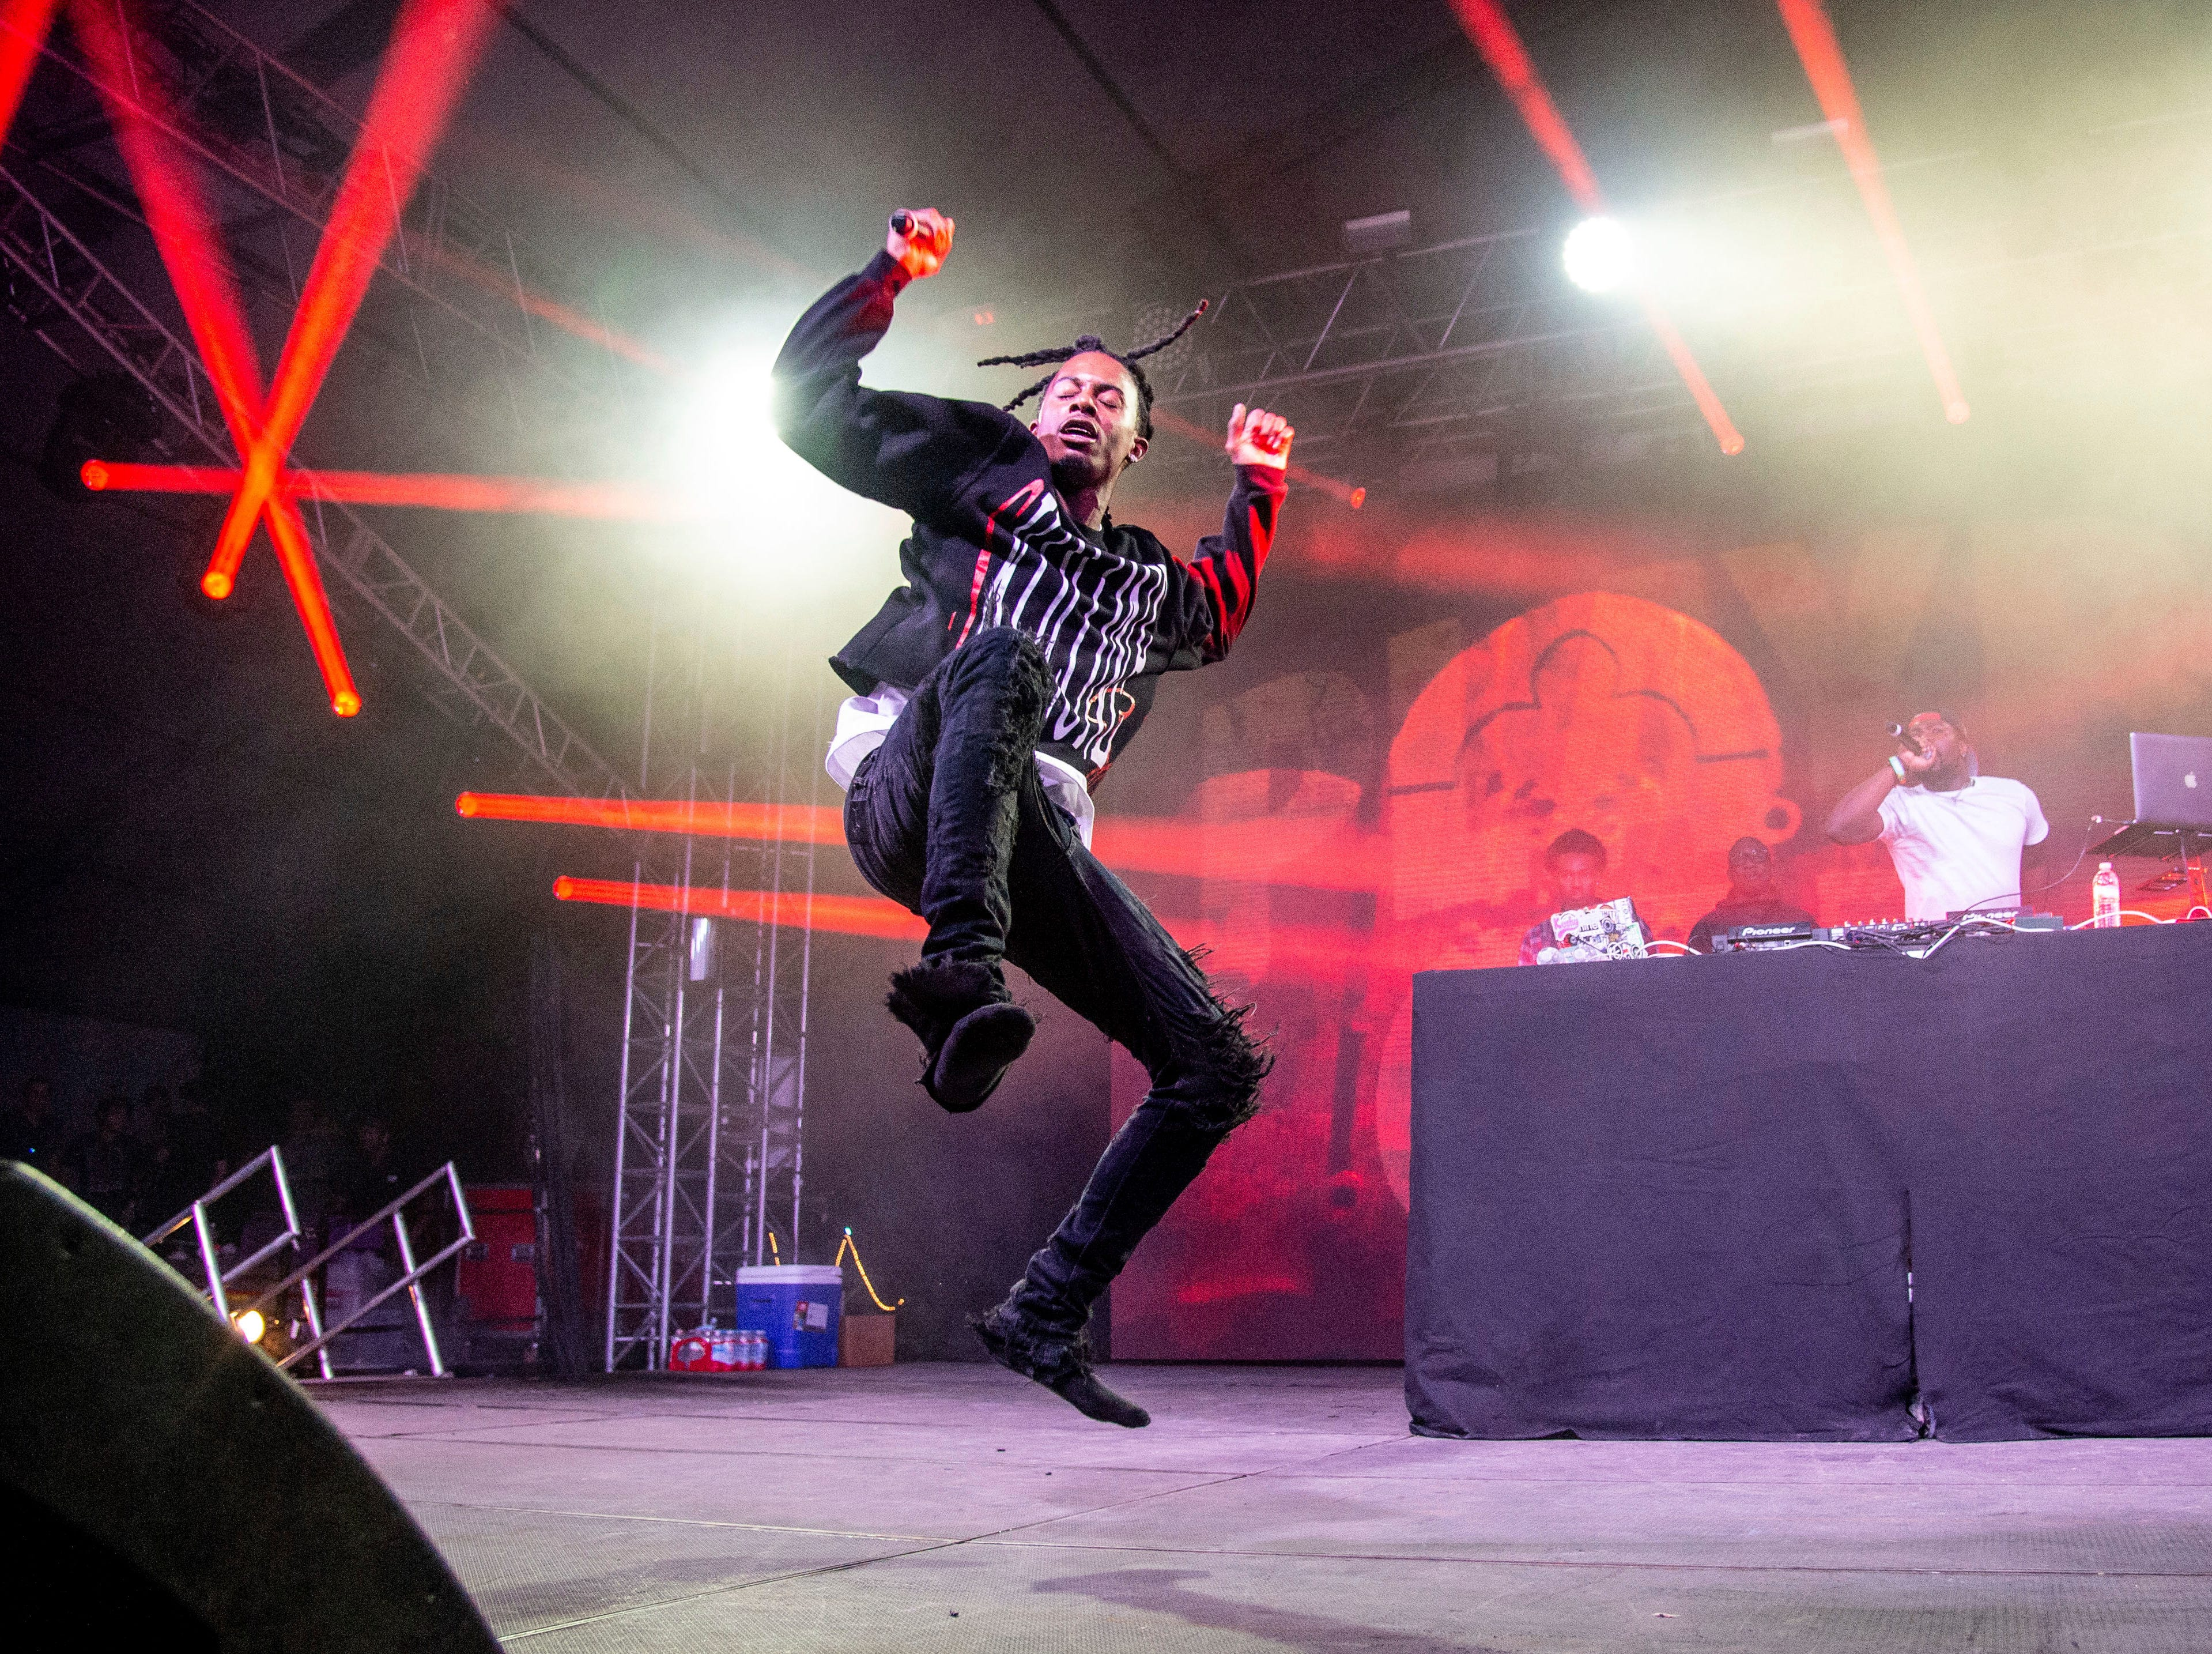 Playboi Carti performs at the Bonnaroo Music and Arts Festival on Friday, June 8, 2018, in Manchester, Tenn. (Photo by Amy Harris/Invision/AP)